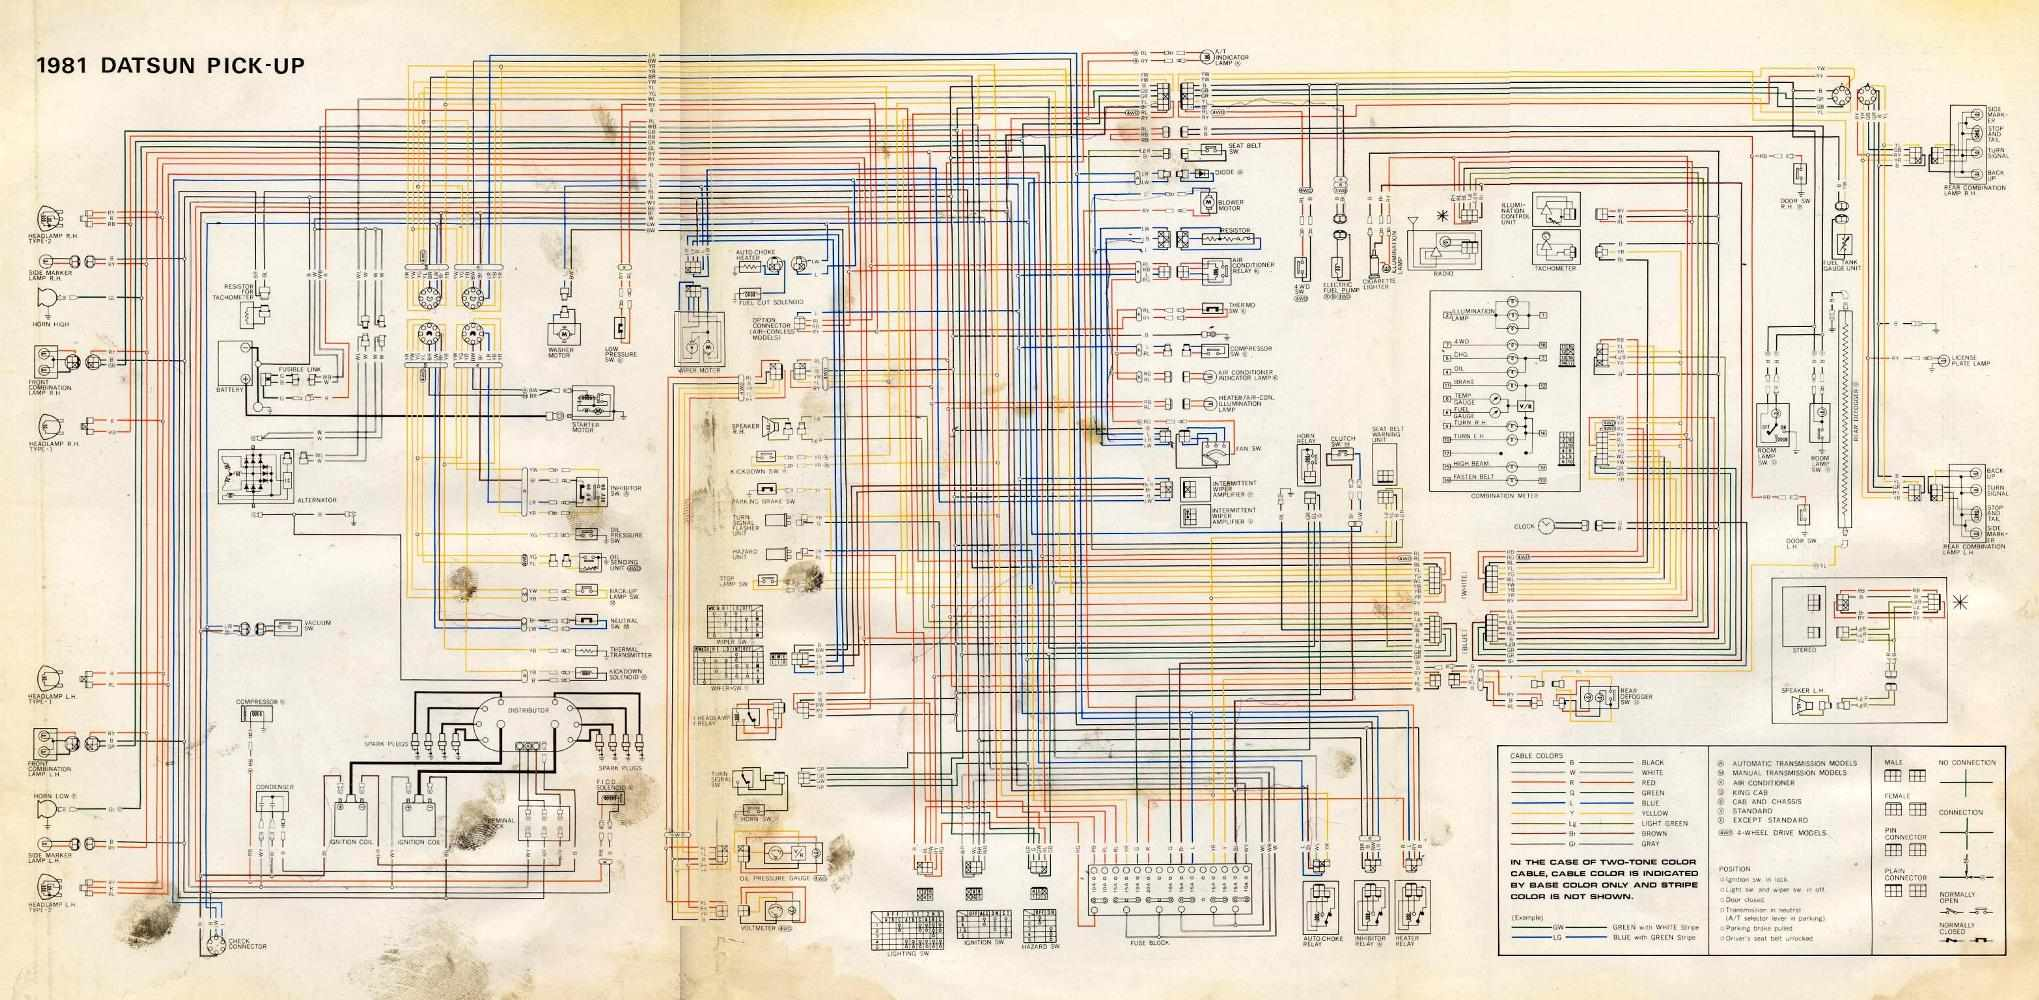 1987 S10 Wiper Motor Wiring Diagram Library Nissan 1978 C10 For Electrical Diagrams 1986 Chevy Truck Chevrolet